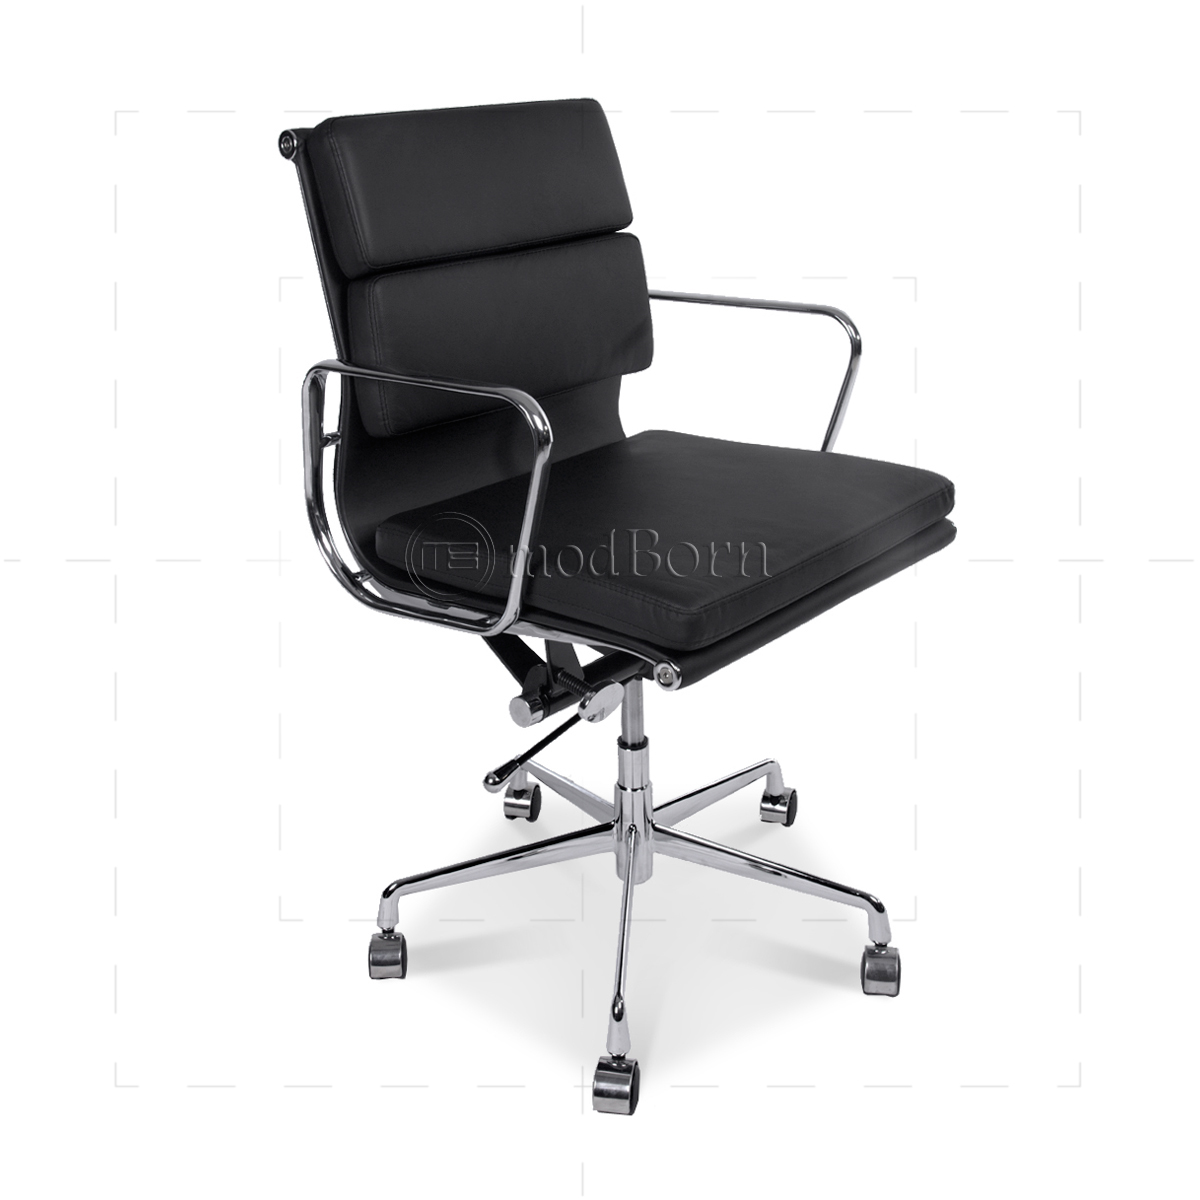 ea217 eames style office chair low back soft pad black leather replica. Black Bedroom Furniture Sets. Home Design Ideas